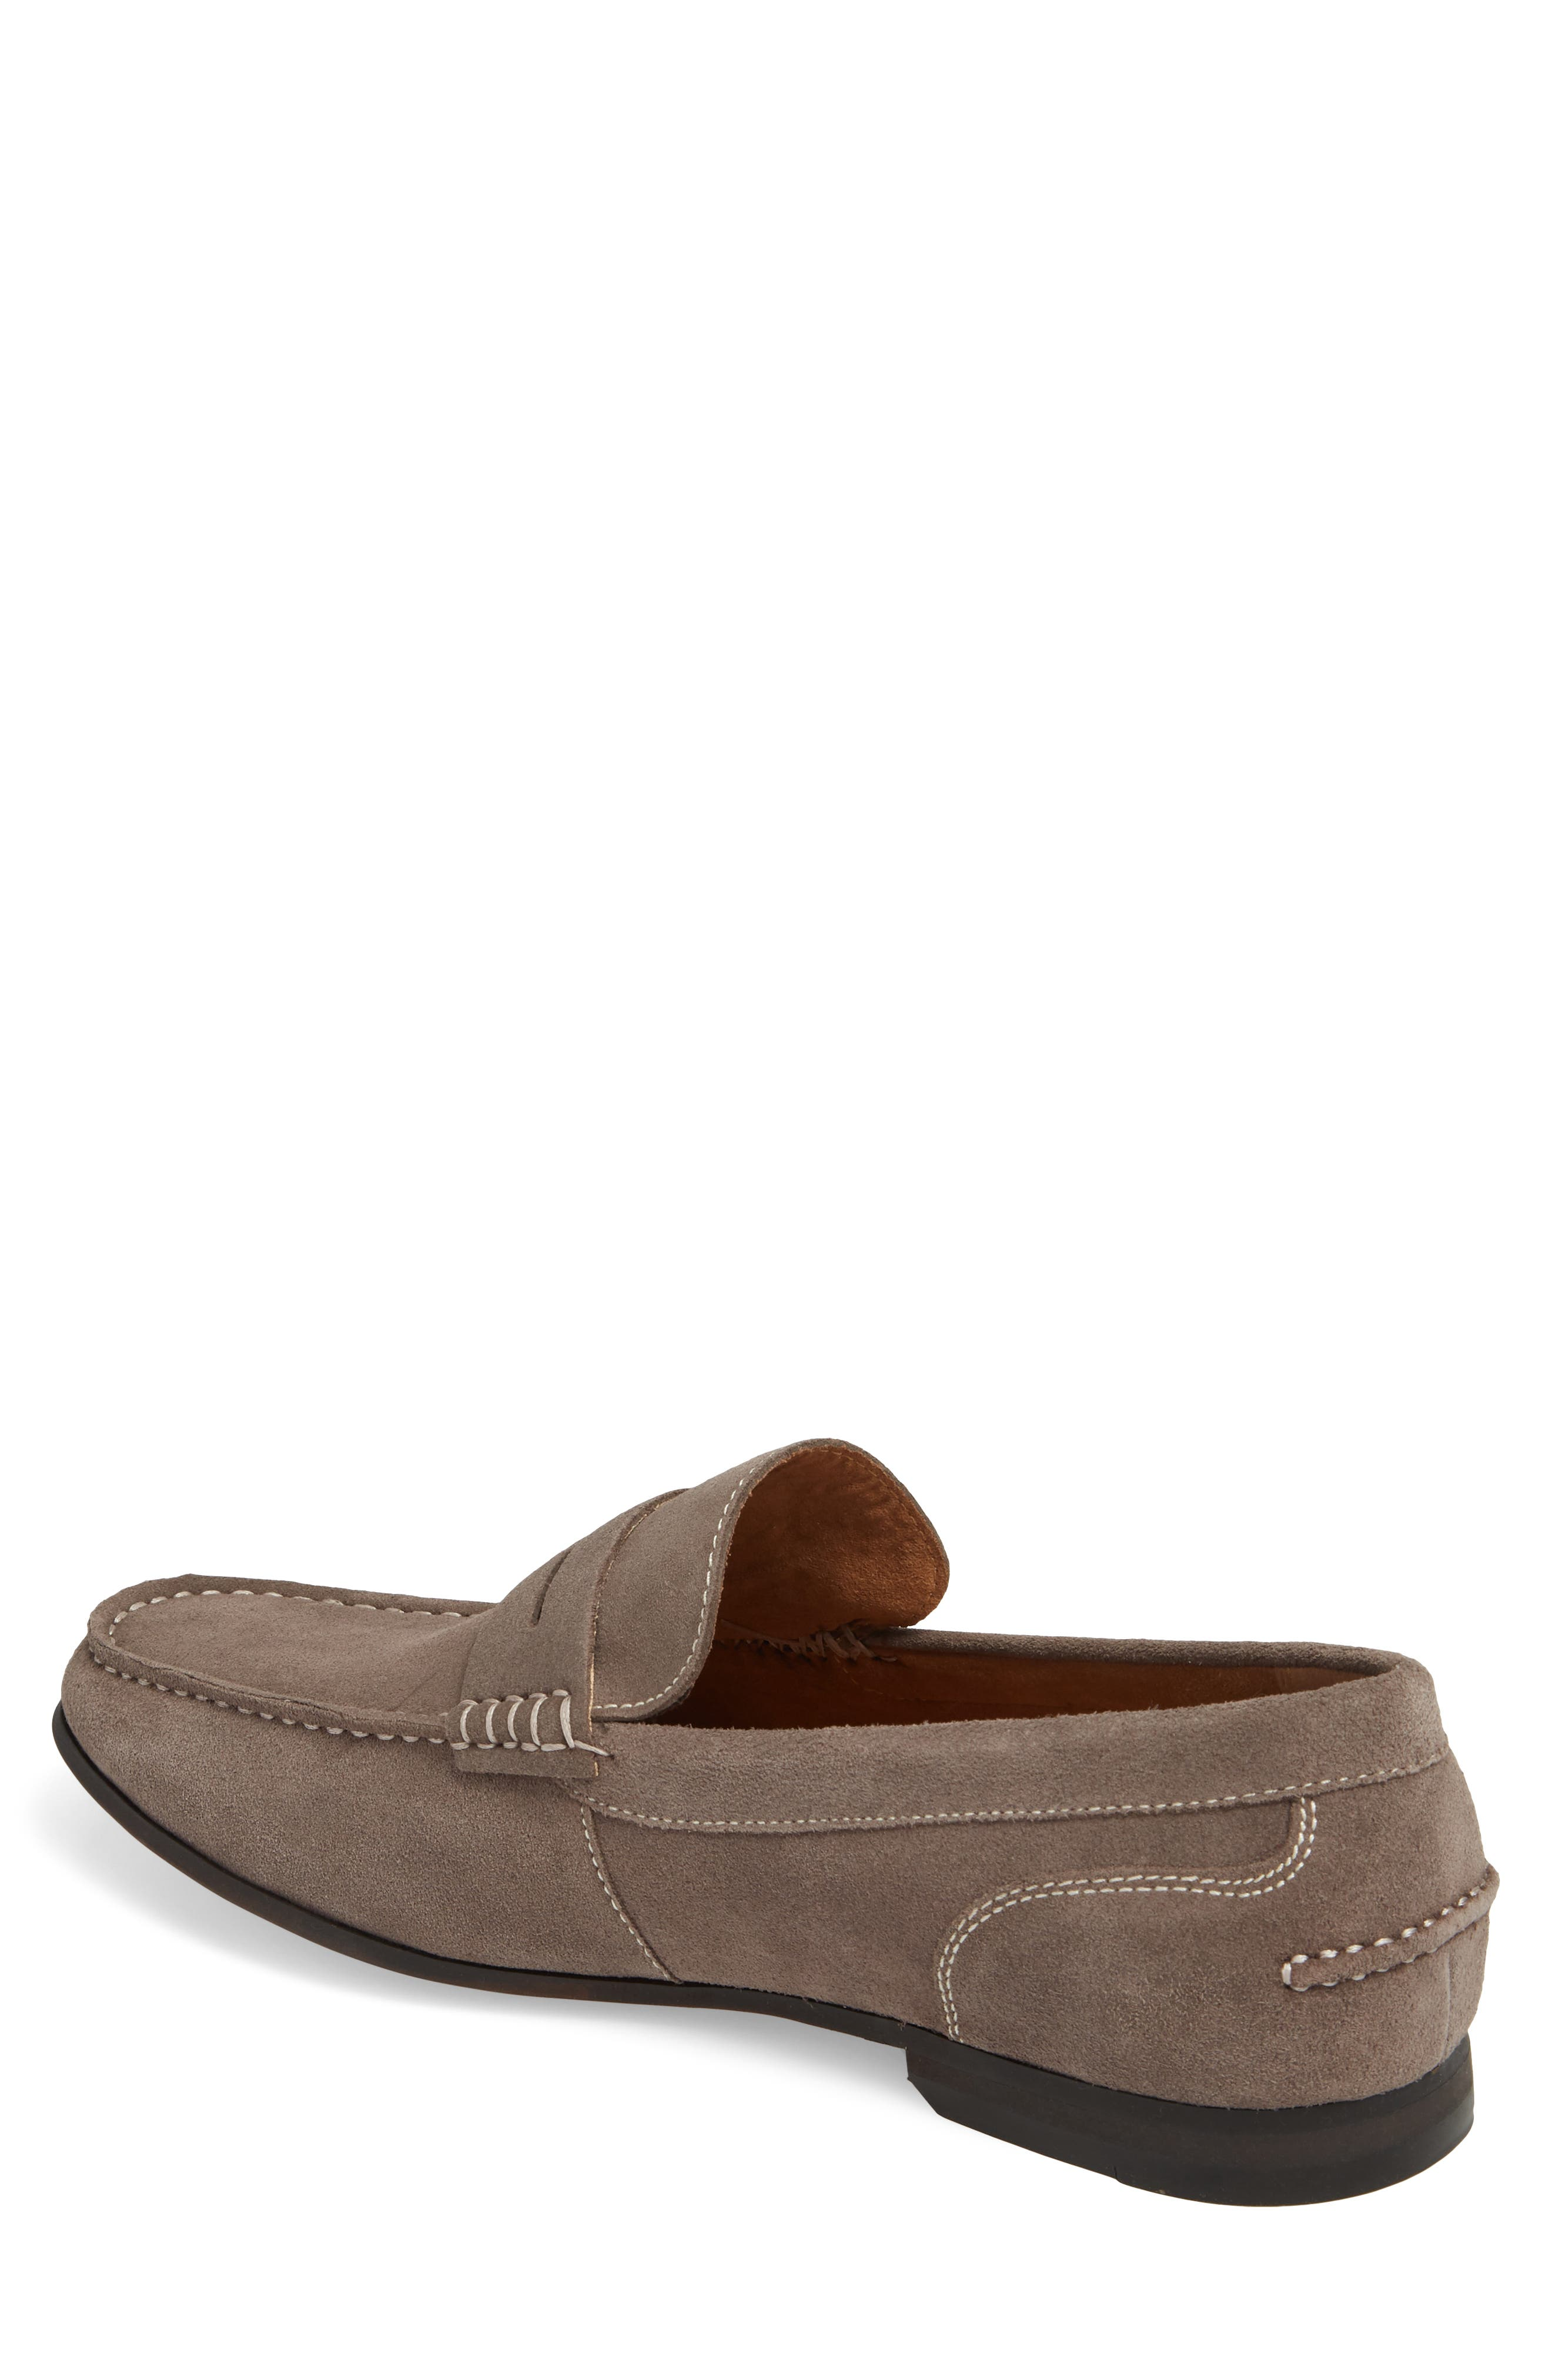 Crespo Penny Loafer,                             Alternate thumbnail 2, color,                             020